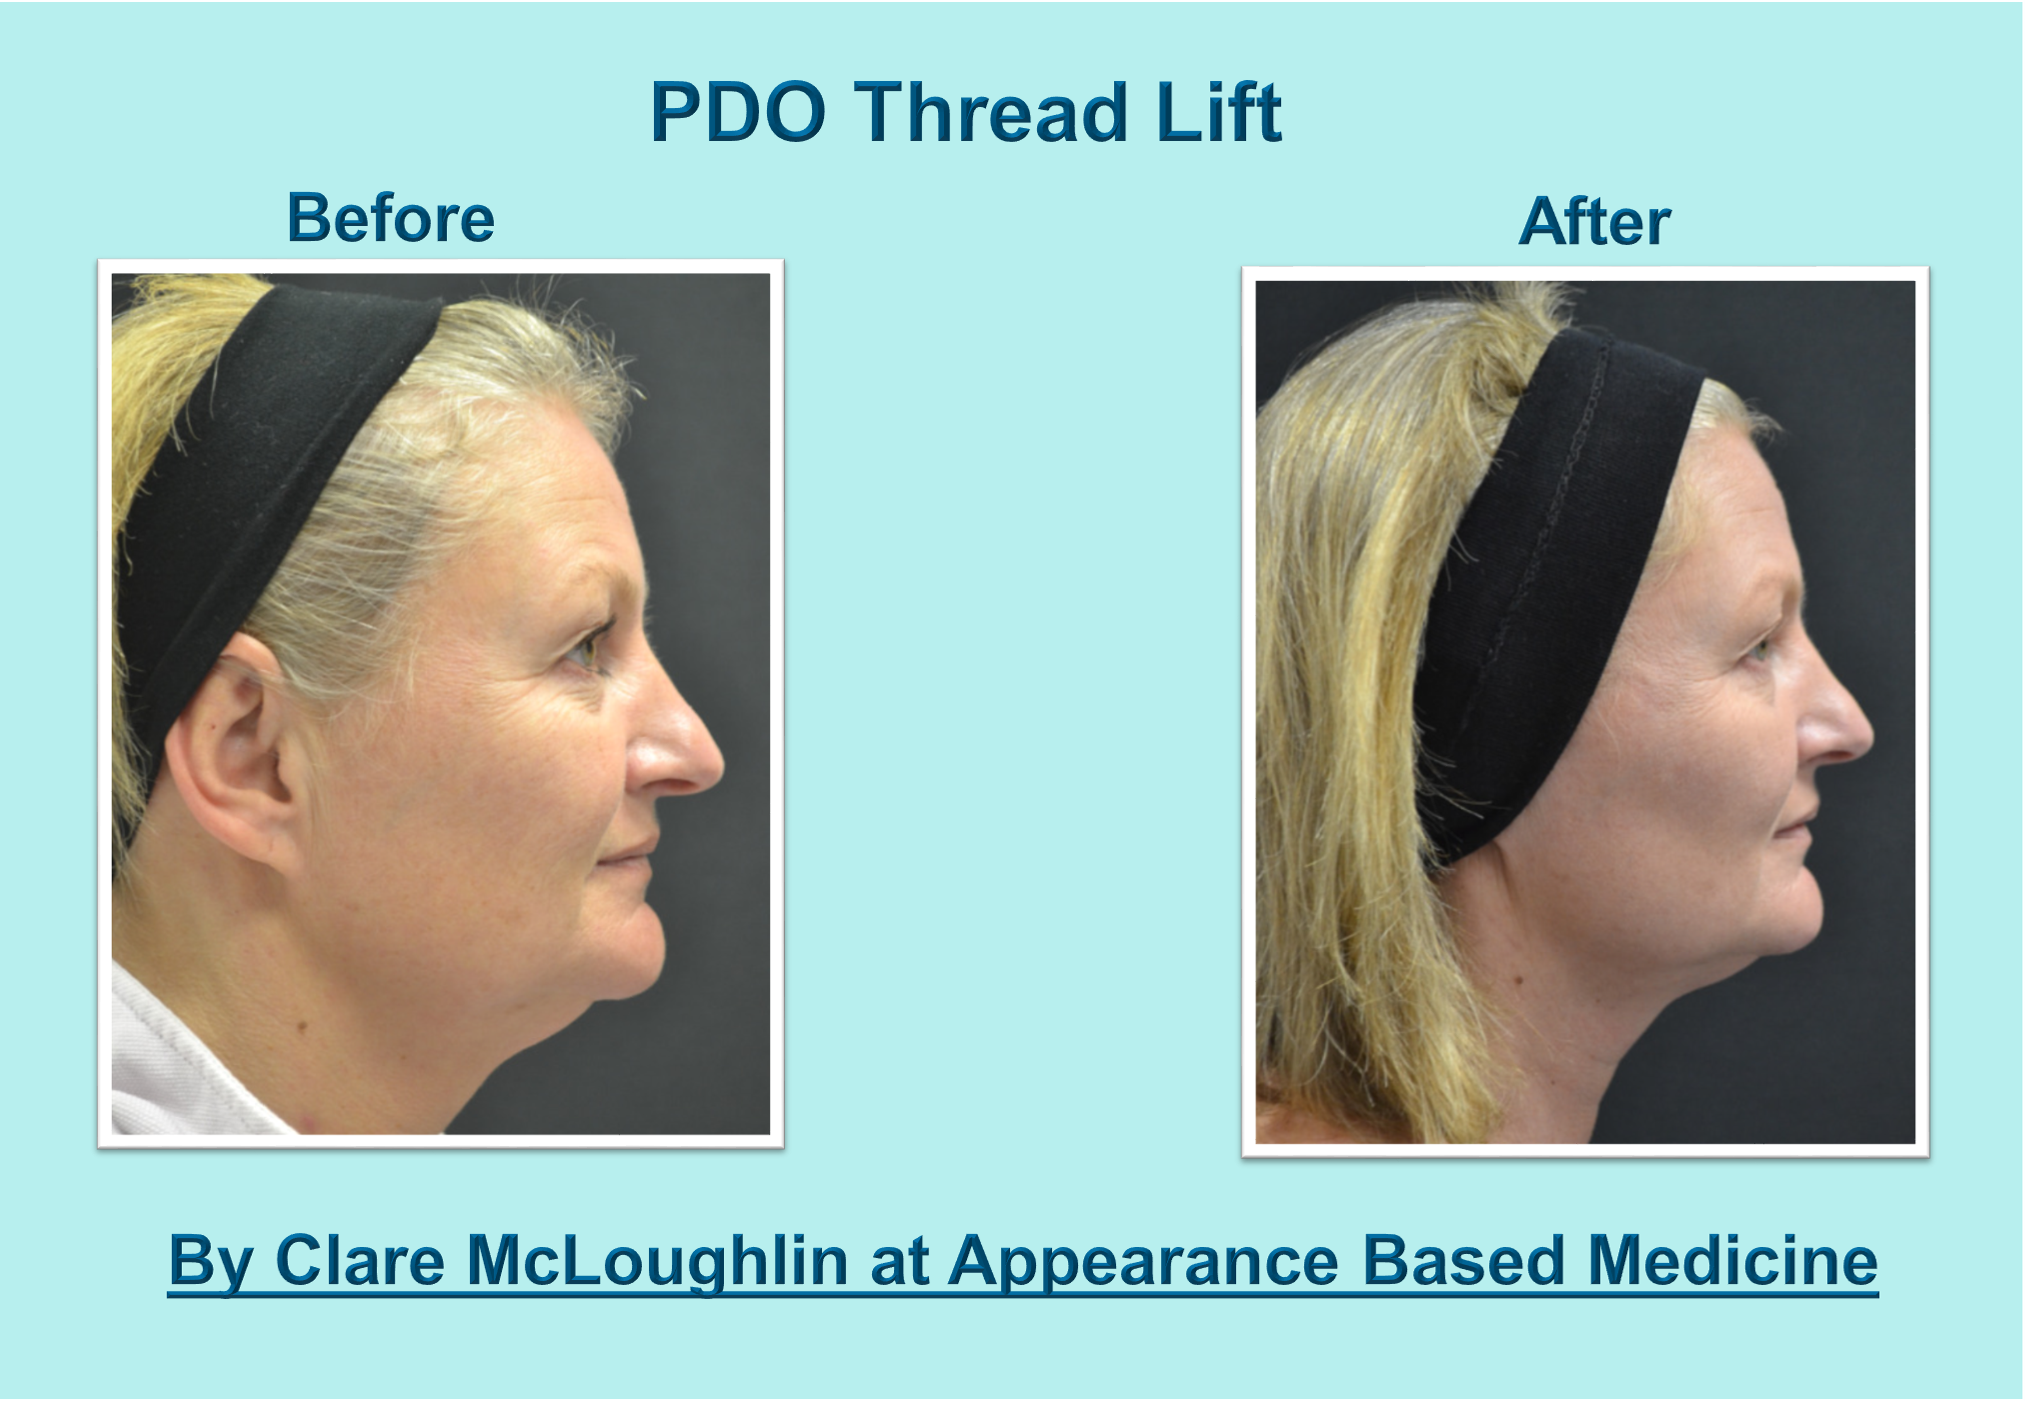 PDO Thread Lift Information Including Before & After Images